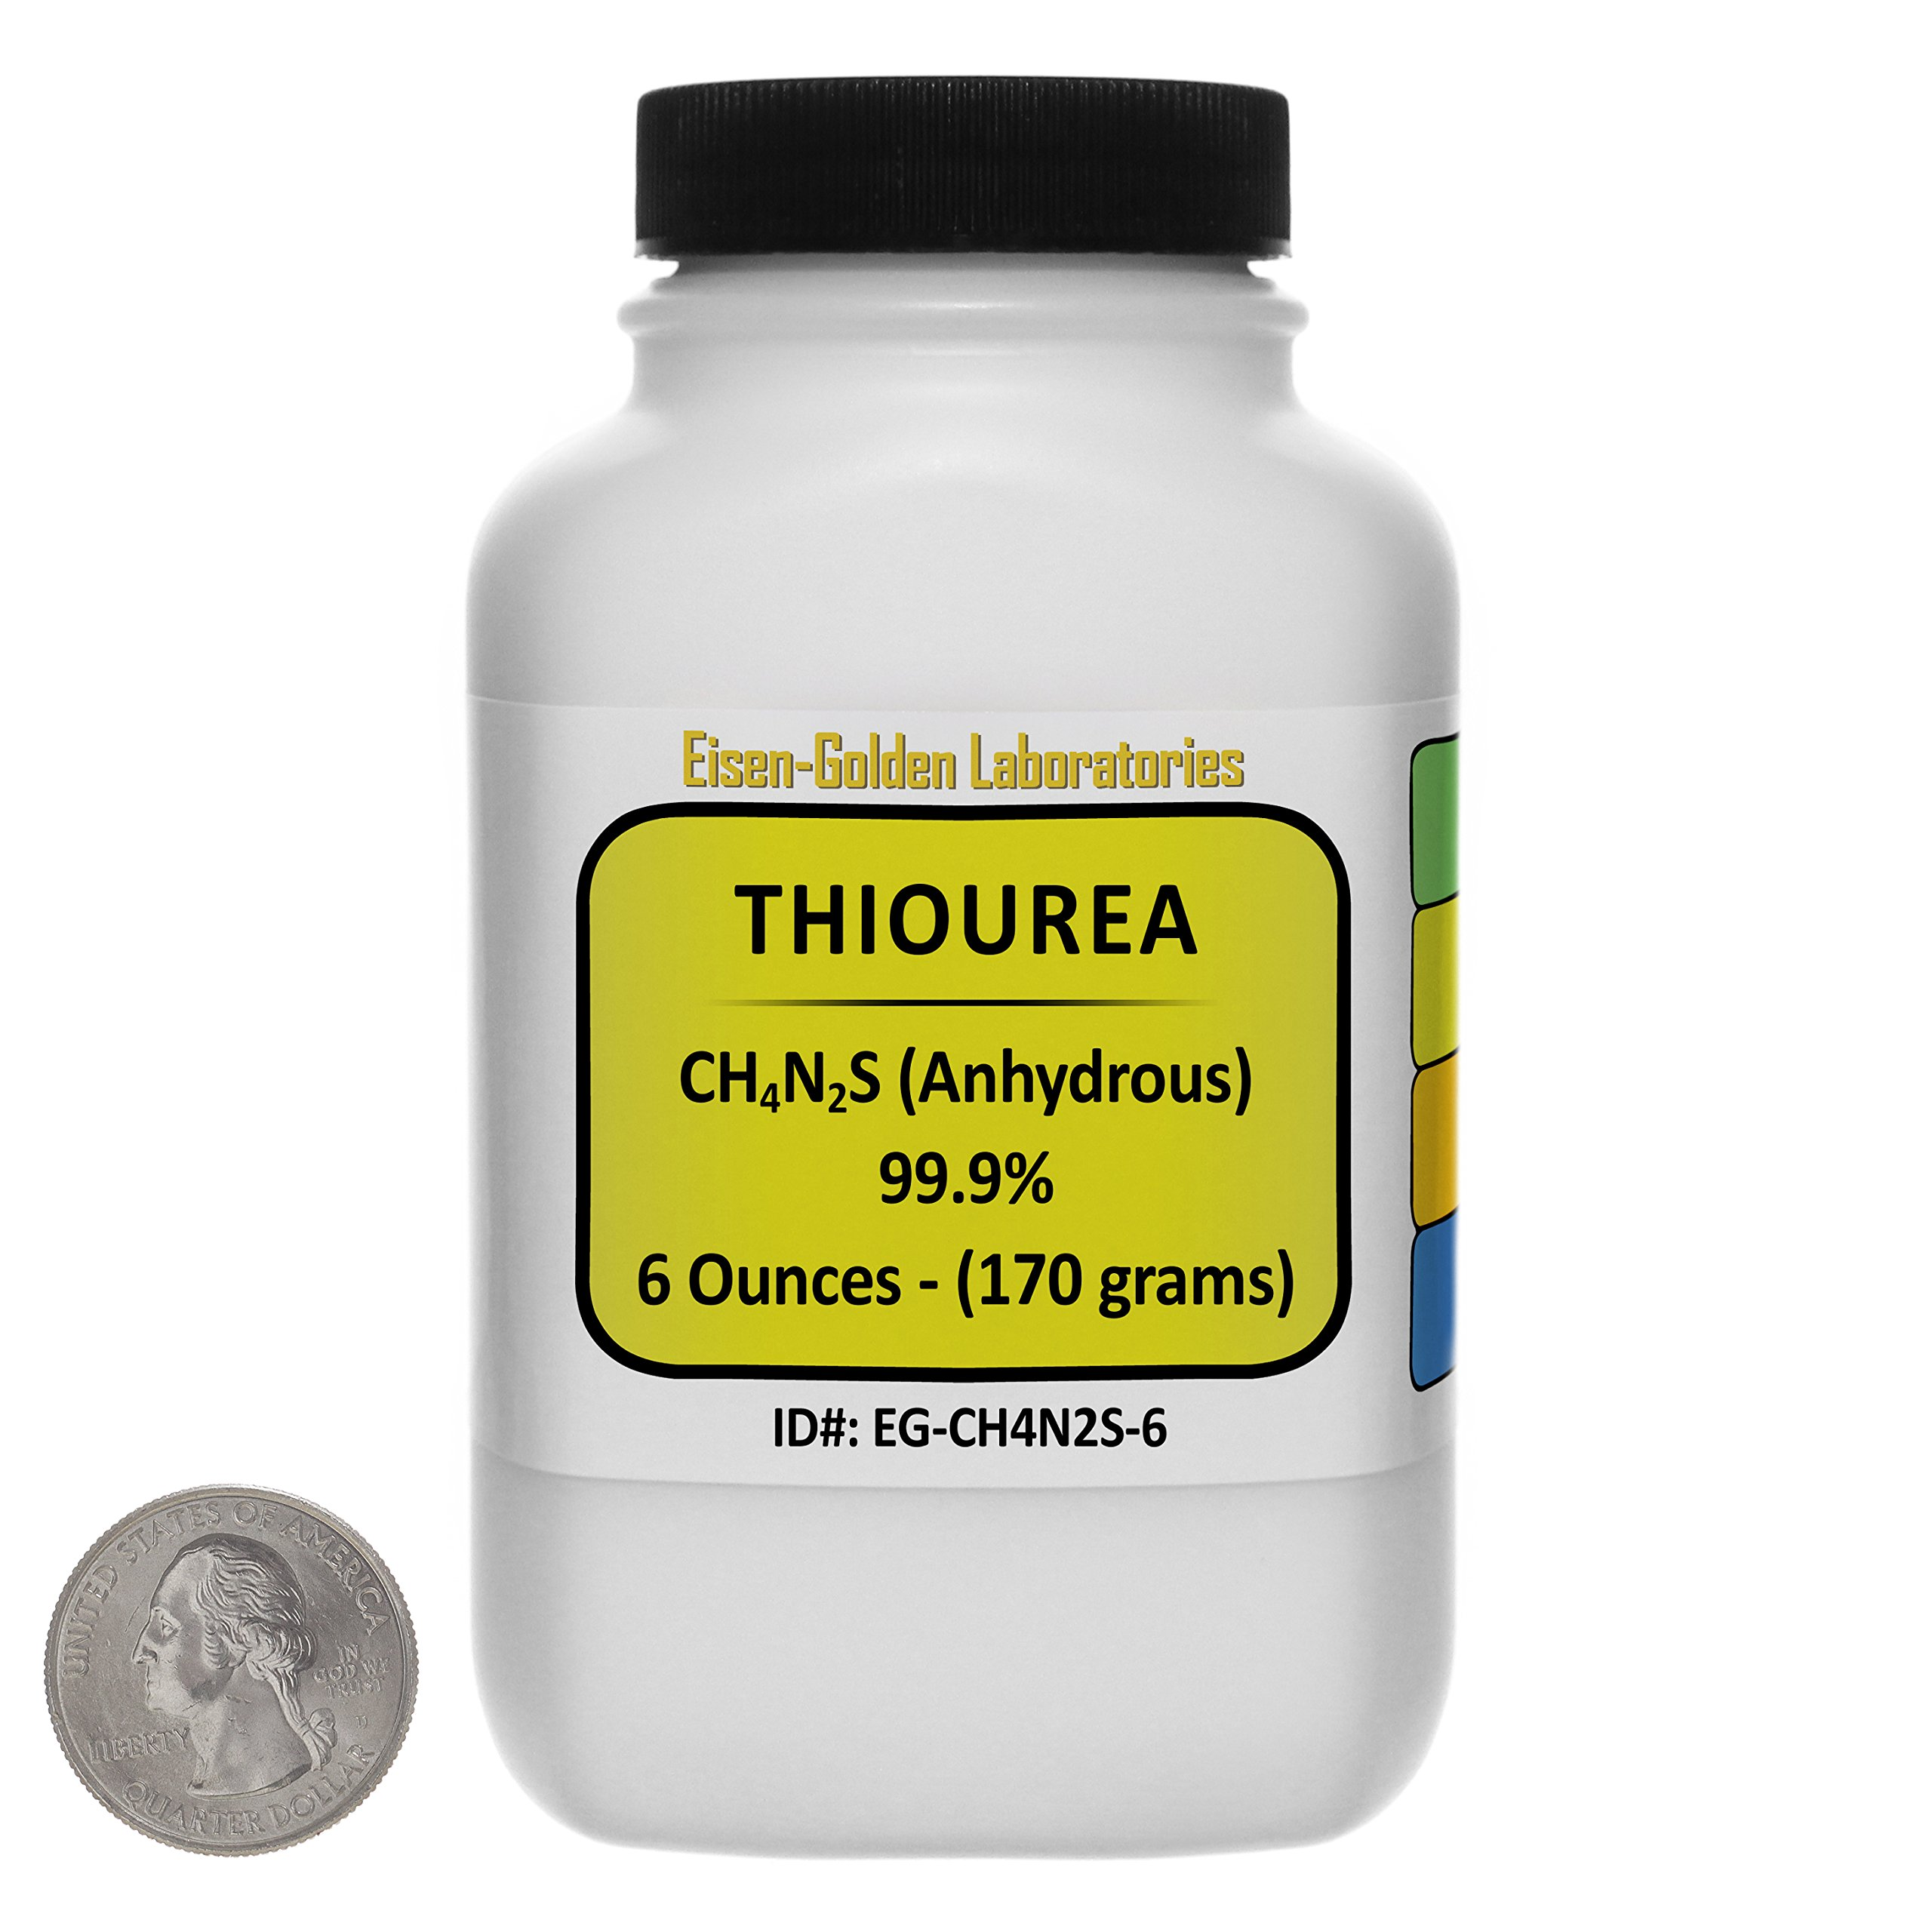 Thiourea [SC(NH2)2] 99.9% ACS Grade Crystals 6 Oz in a Space-Saver Bottle USA